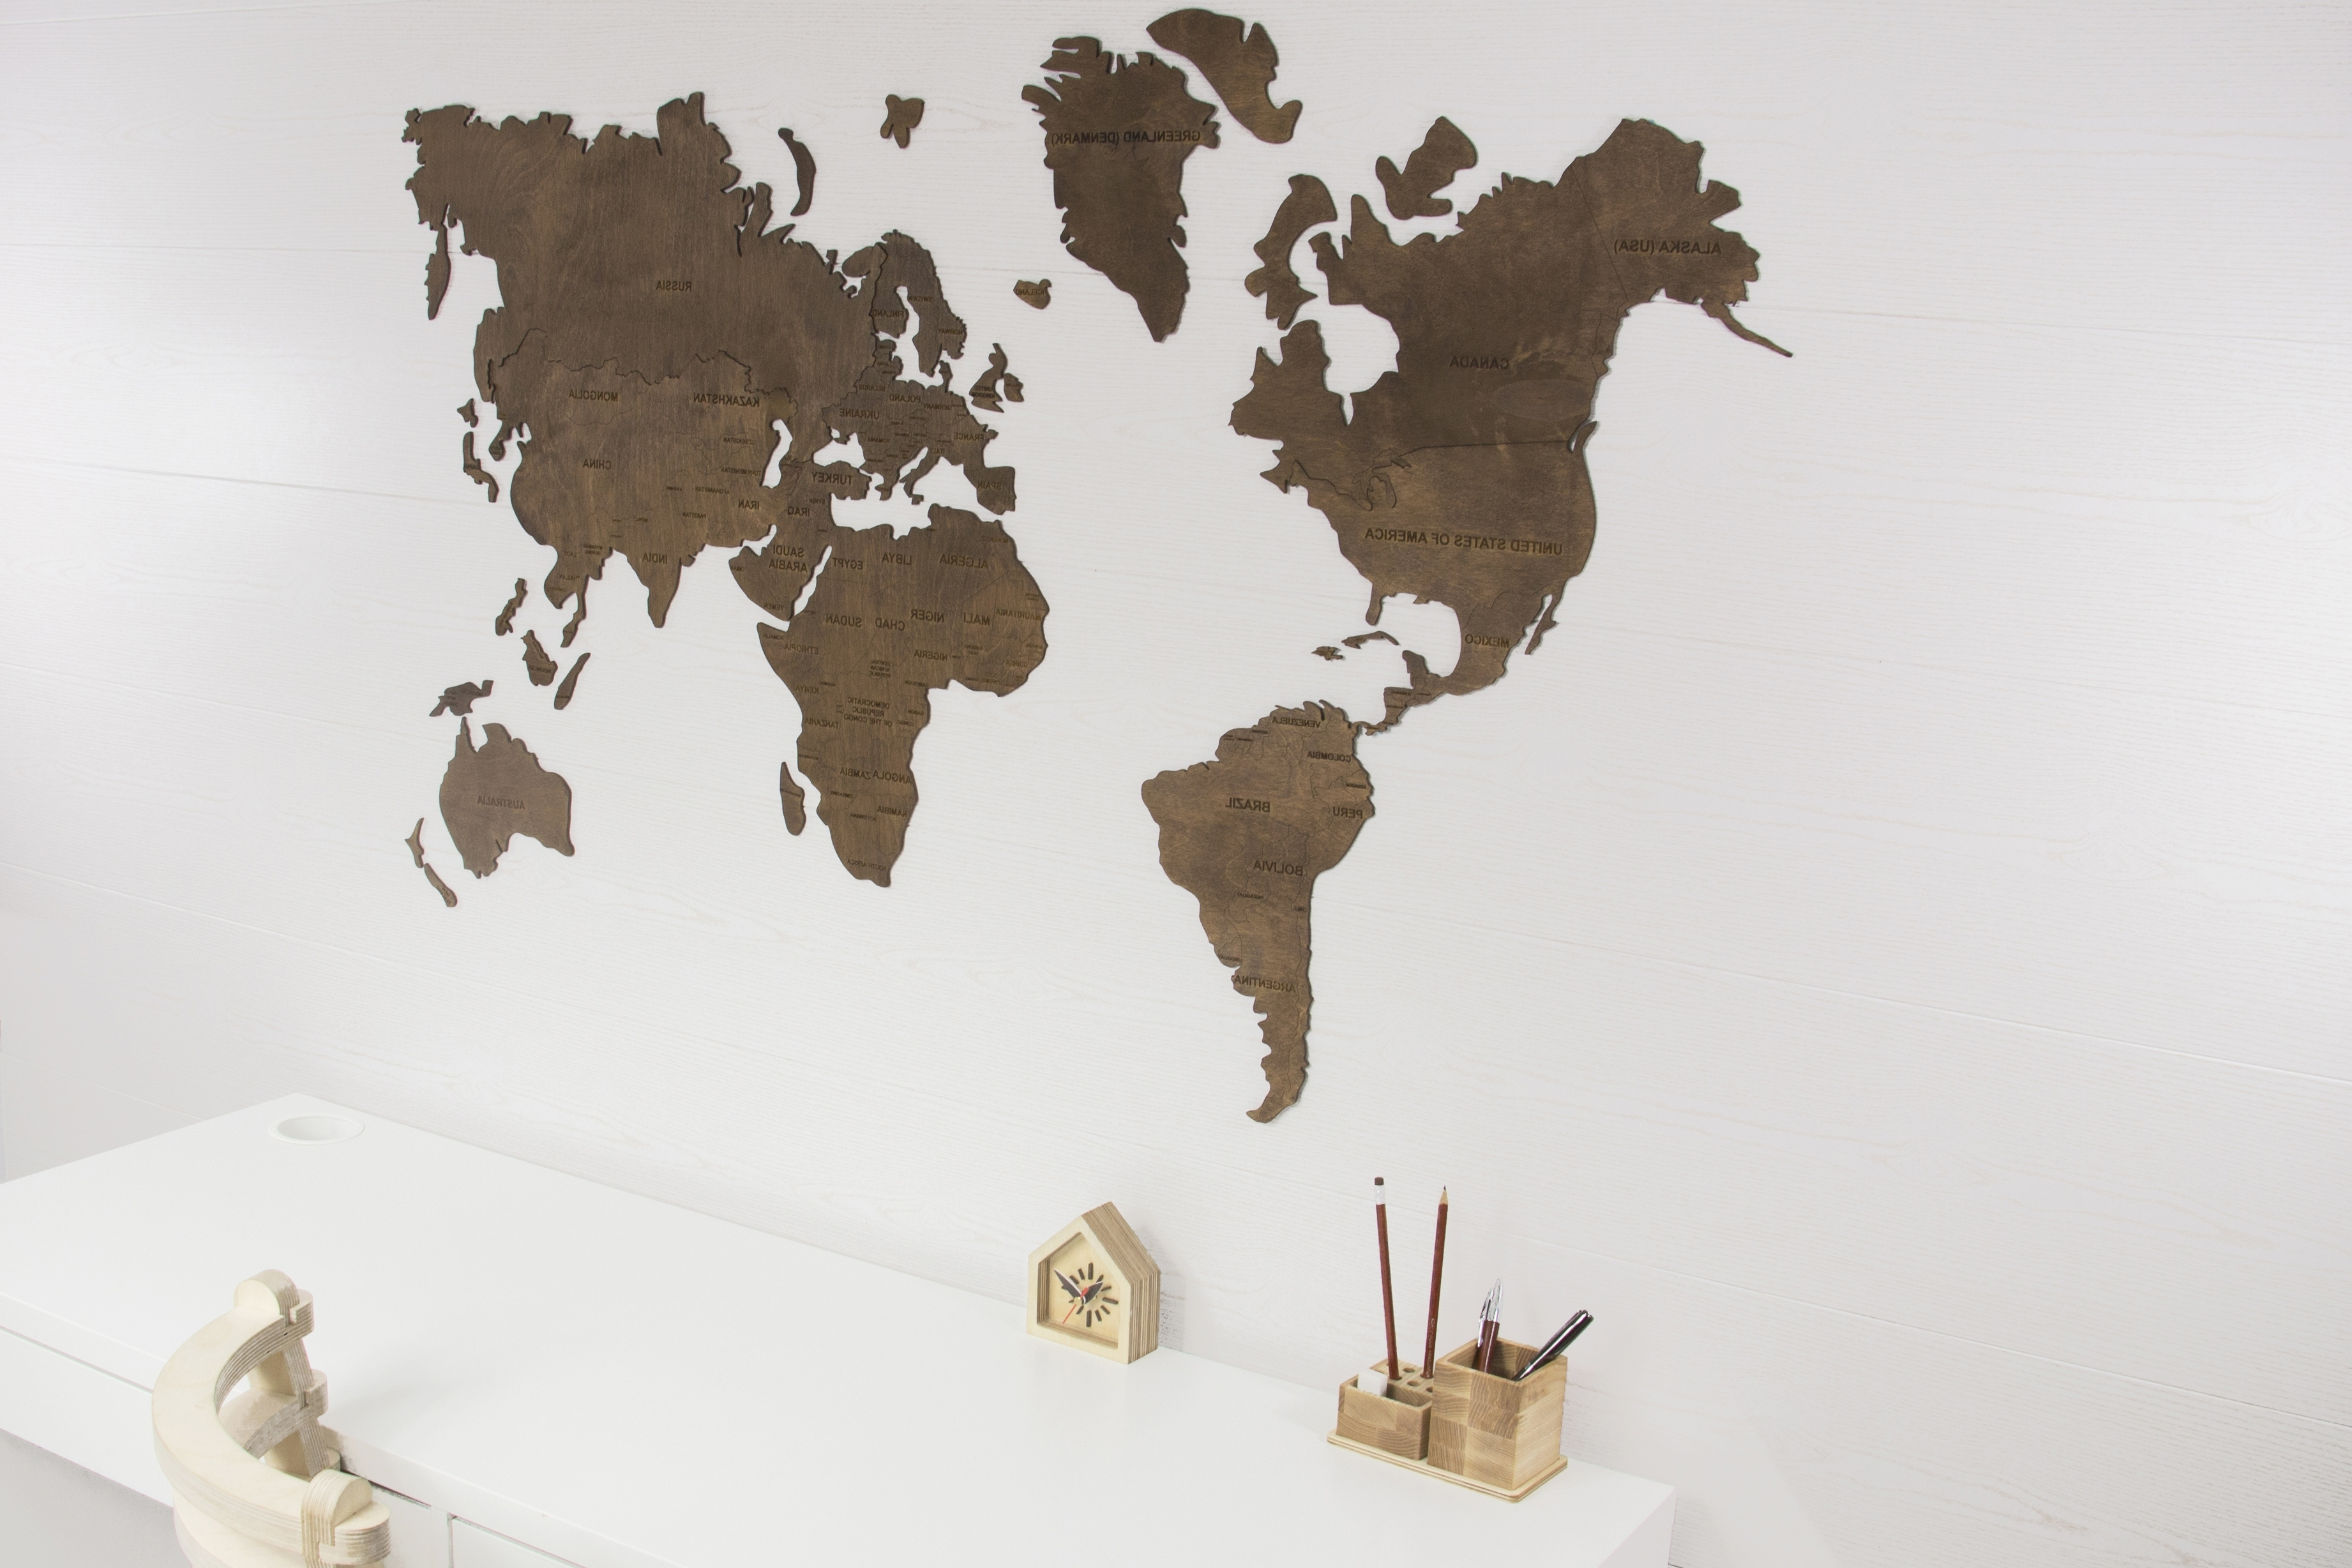 Most Current Wood Map Wall Art Throughout World Map Wall, World Map Hanging, World Map Wooden, World Map Wood (View 15 of 15)